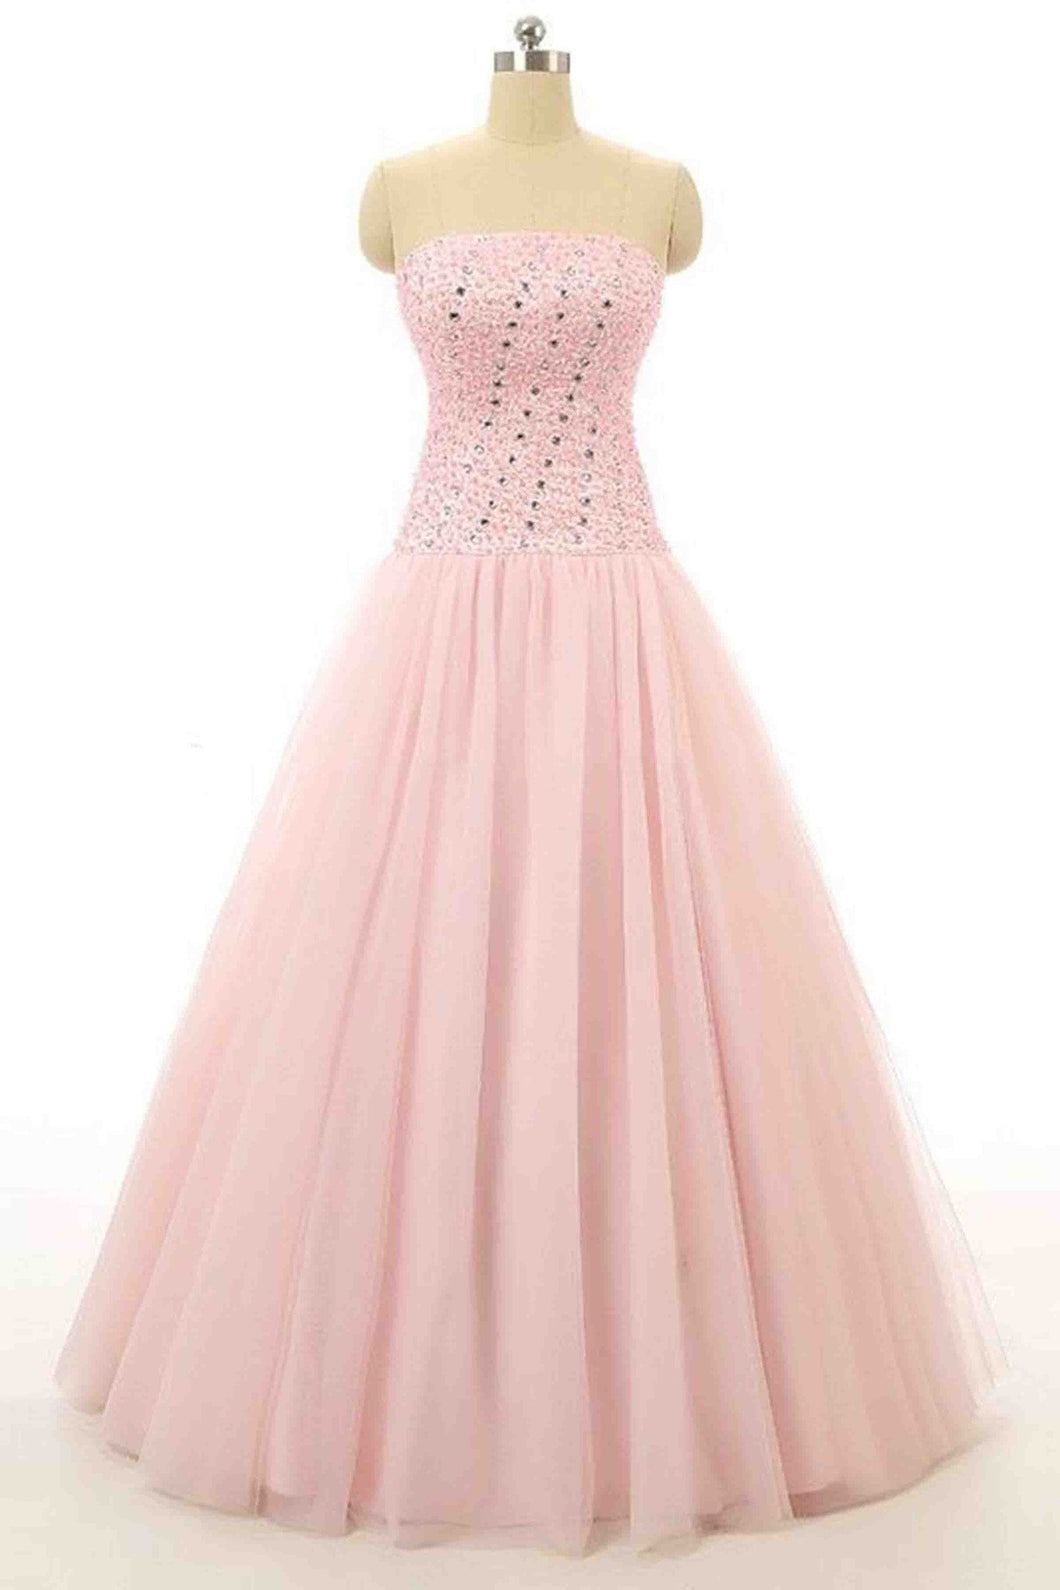 Sweet 16 Dresses | Pink tulle beading sweetheart A-line princess long prom dresses